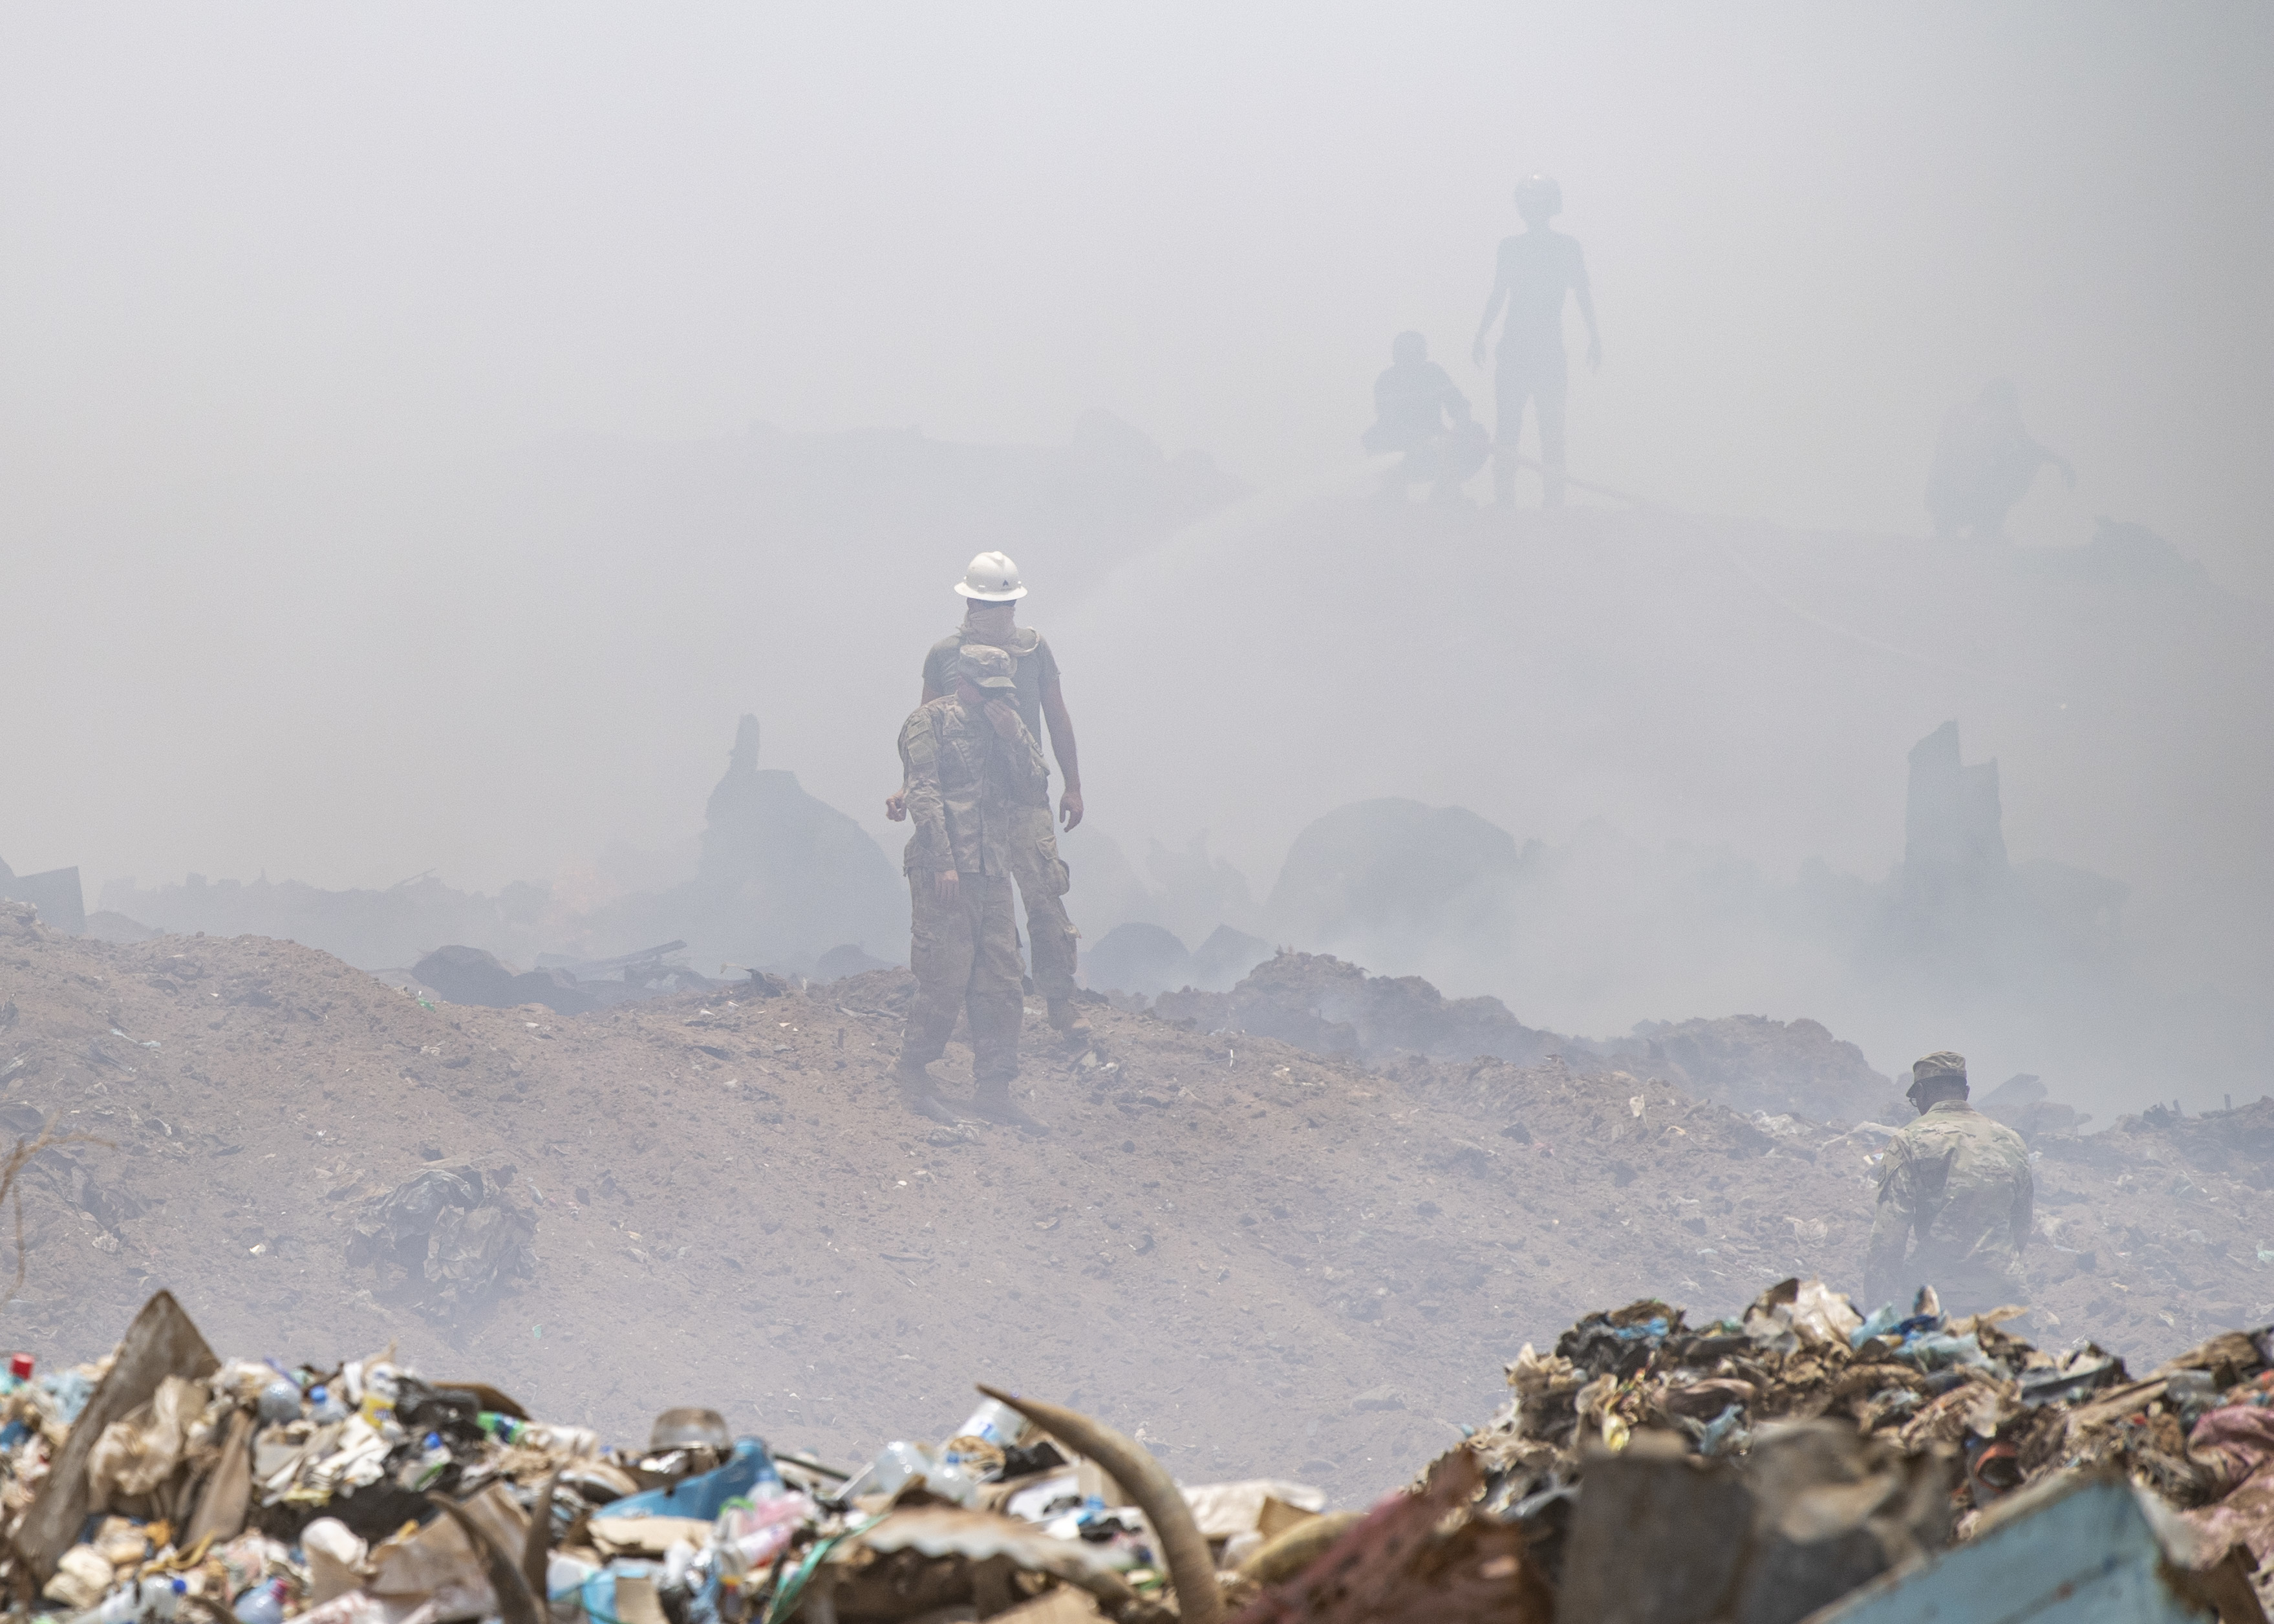 U.S. Army Soldiers from 465th Engineer Company, 926th Engineer Battalion, 926th Engineer Brigade, 412th Theater Engineer Command, based in Birmingham, Alabama, assigned to Combined Joint Task Force-Horn of Africa, assess their firefighting sector at the Douda landfill in Djibouti, Aug. 14, 2019. During a fire at the landfill, the 465th used bulldozers to create dirt berms that would make firebreaks and stop the flames from spreading outward. (U.S. Air Force photo by Staff Sgt. J.D. Strong II)